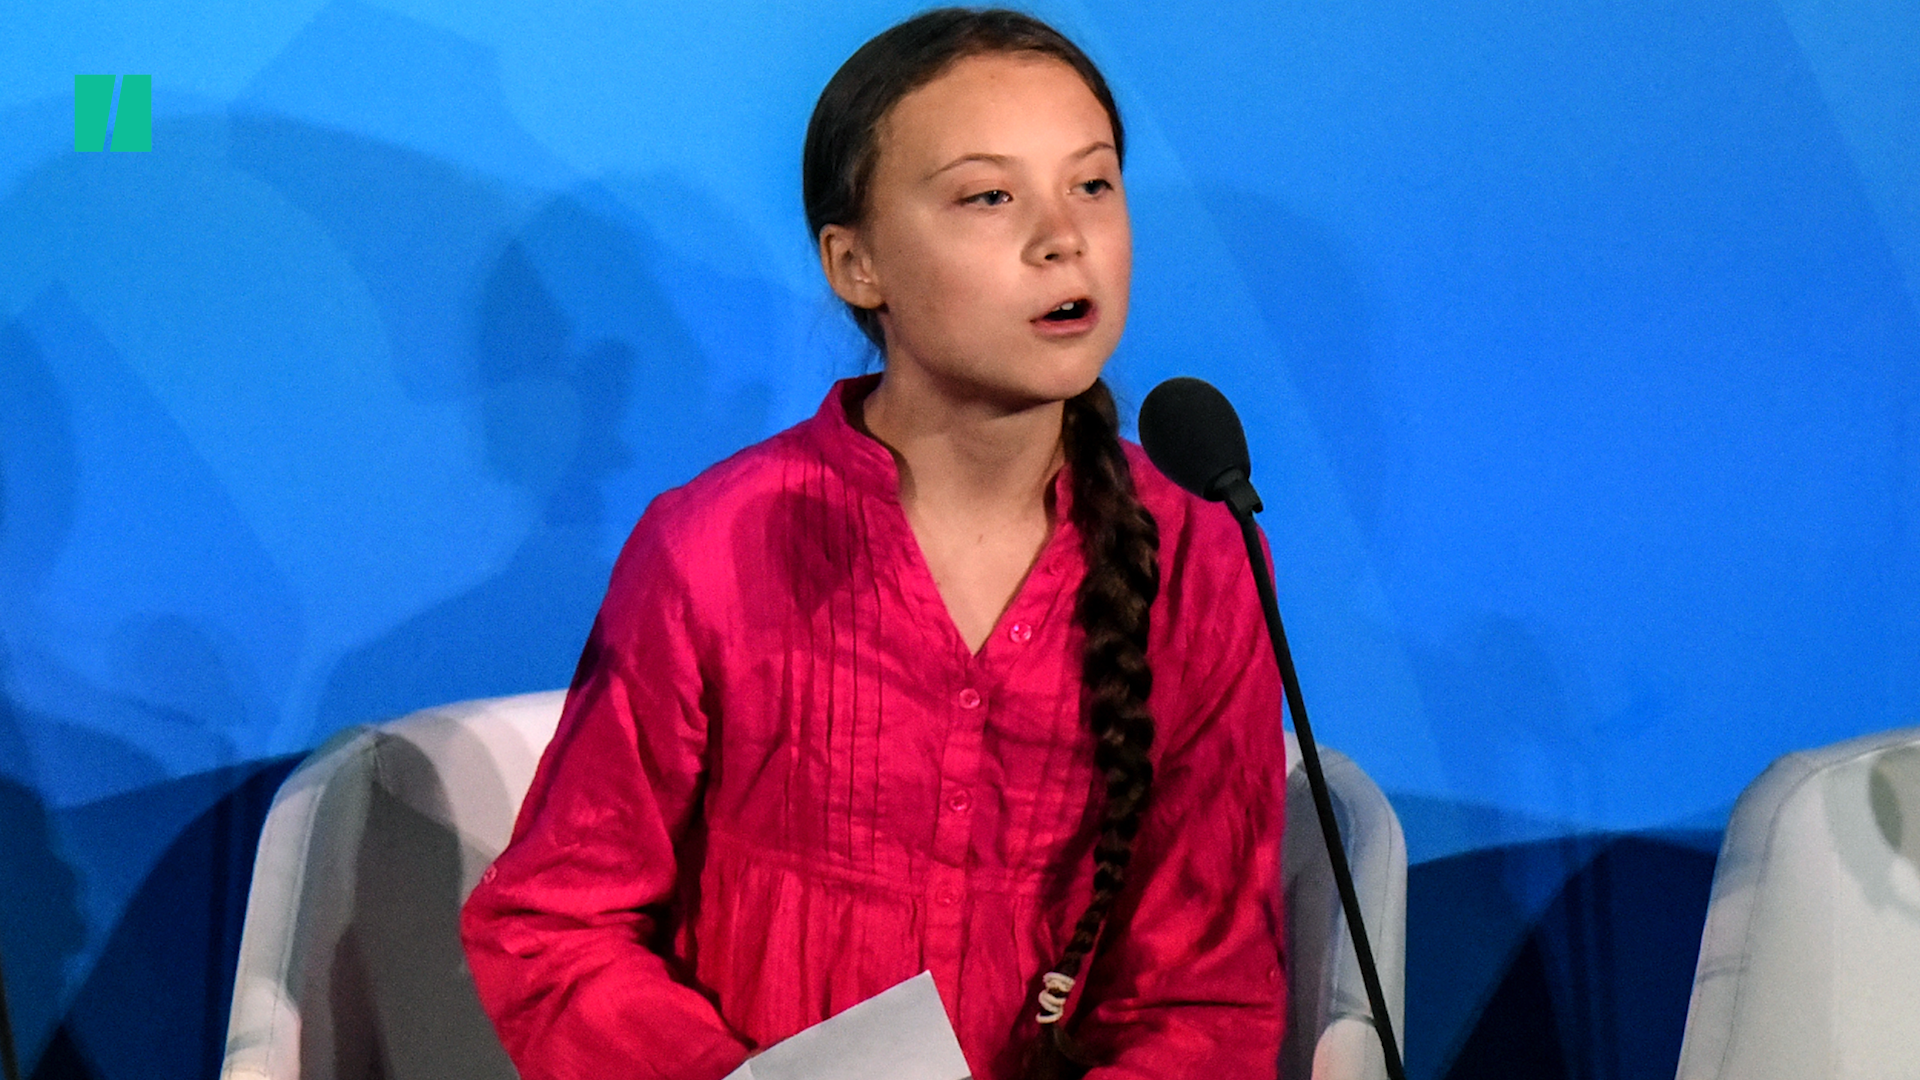 Fox News Apologises For Guest's 'Disgraceful' Attack On Greta Thunberg